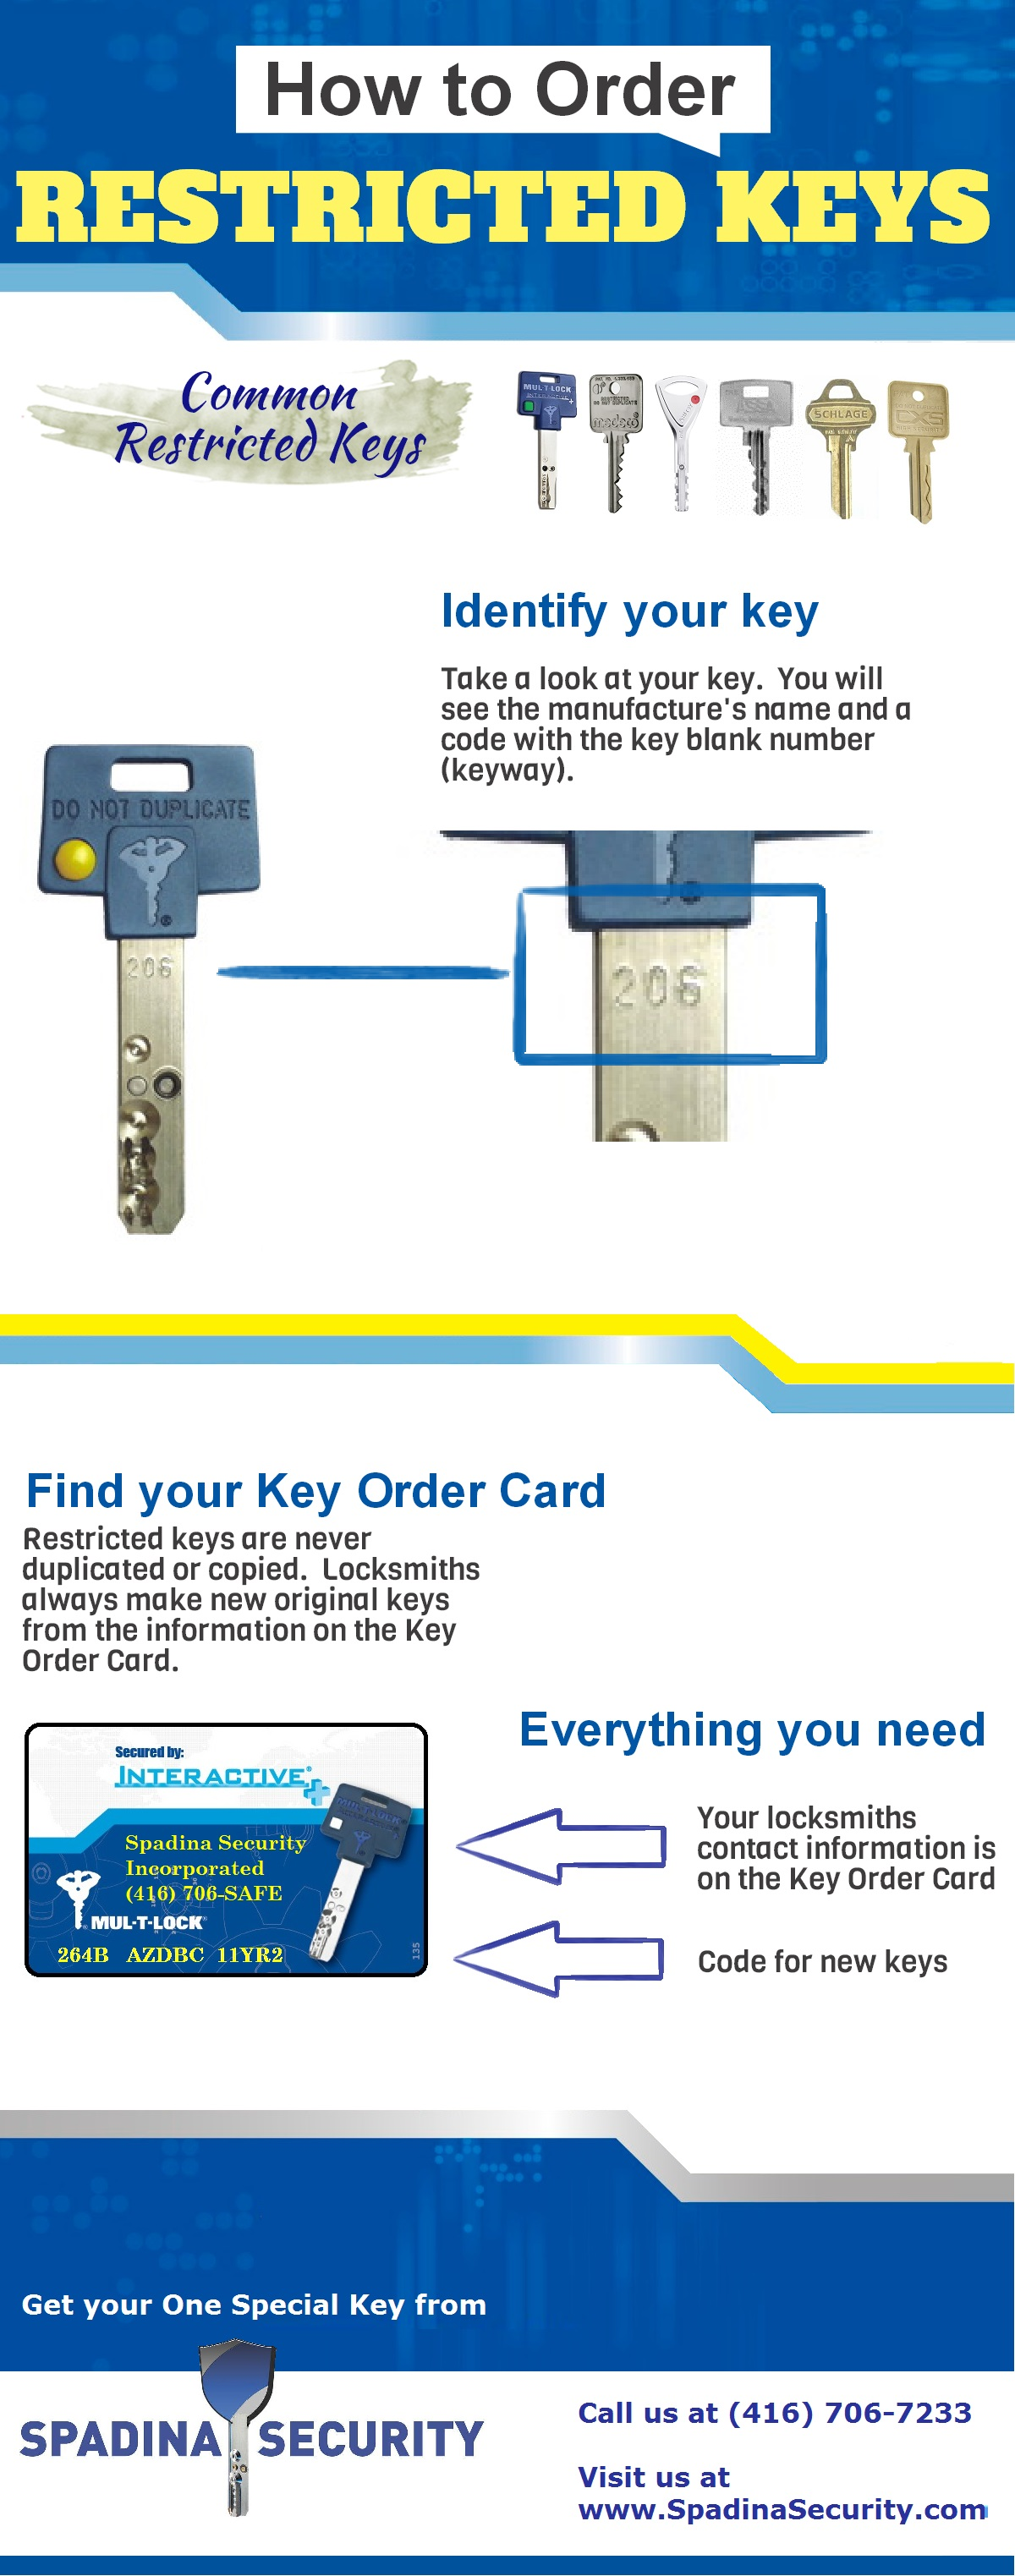 Ordering keys with the key order card